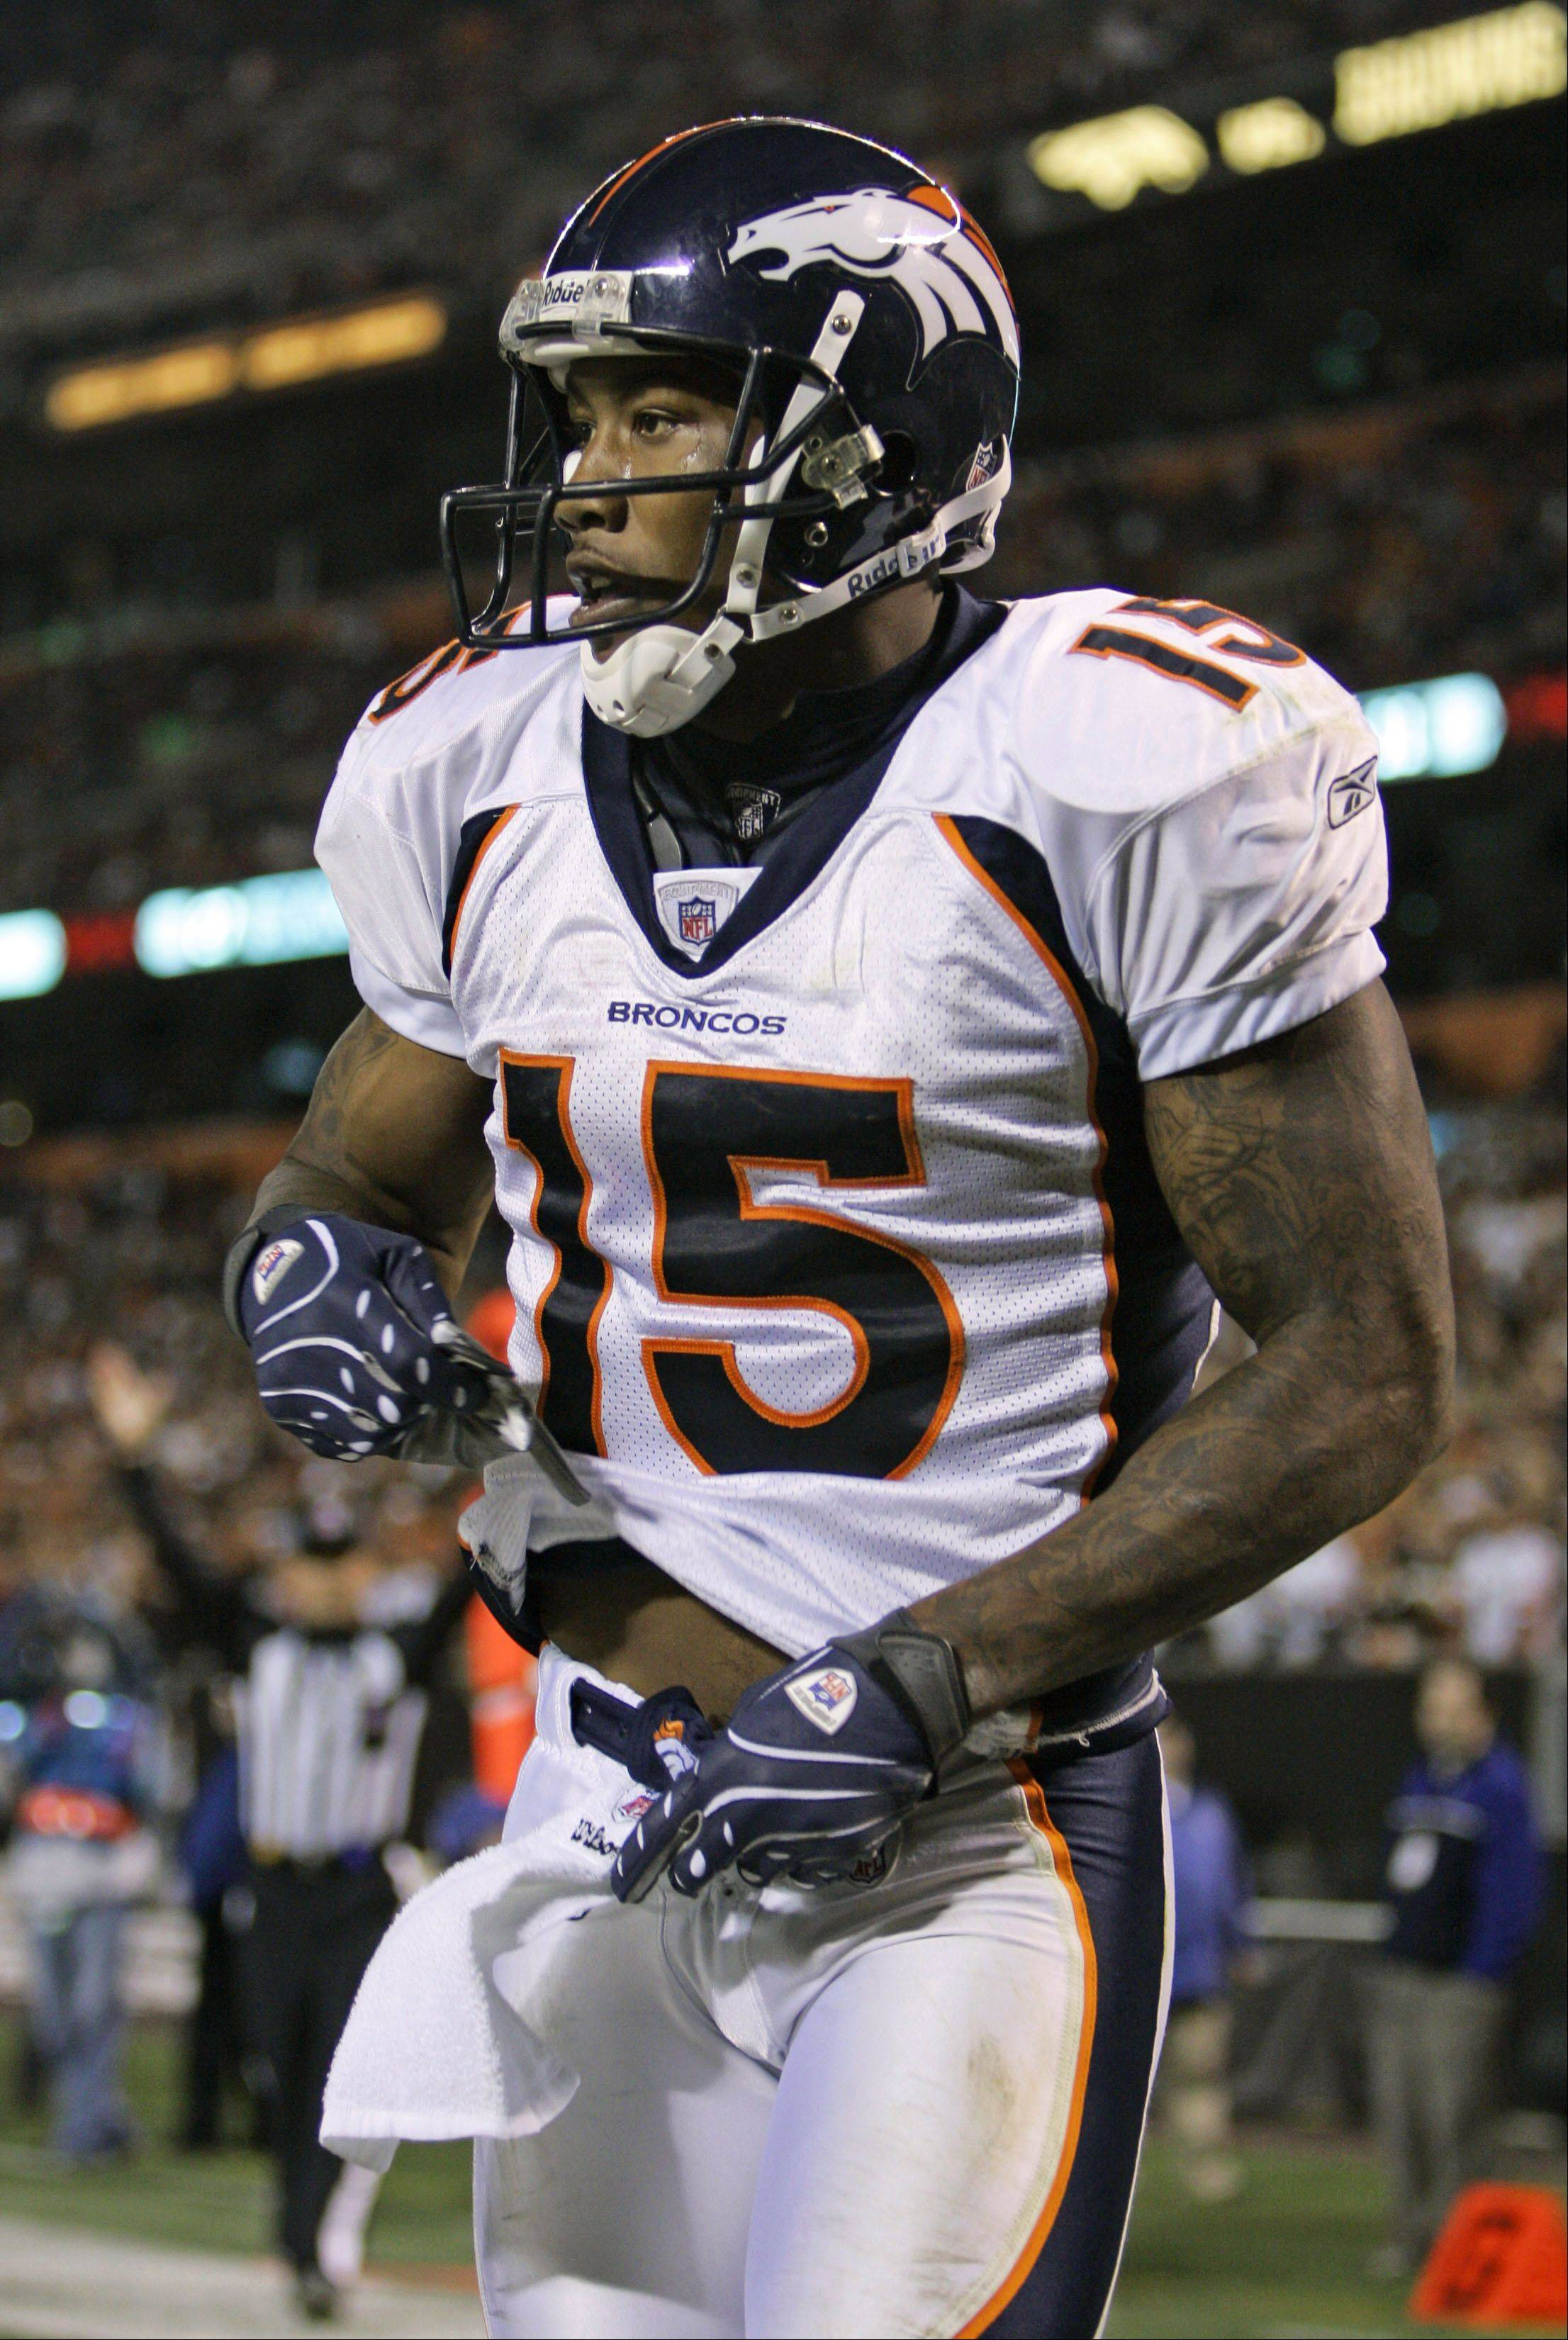 Denver Broncos wide receiver Brandon Marshall starts to pull a black-and-white glove designed to honor President-elect Barack Obama from his pants after an 11-yard touchdown catch in the fourth quarter of an NFL football game against the Cleveland Browns Thursday, Nov. 6, 2008, in Cleveland. Marshall was stopped by Brandon Stokley from possibly committing the personal foul.